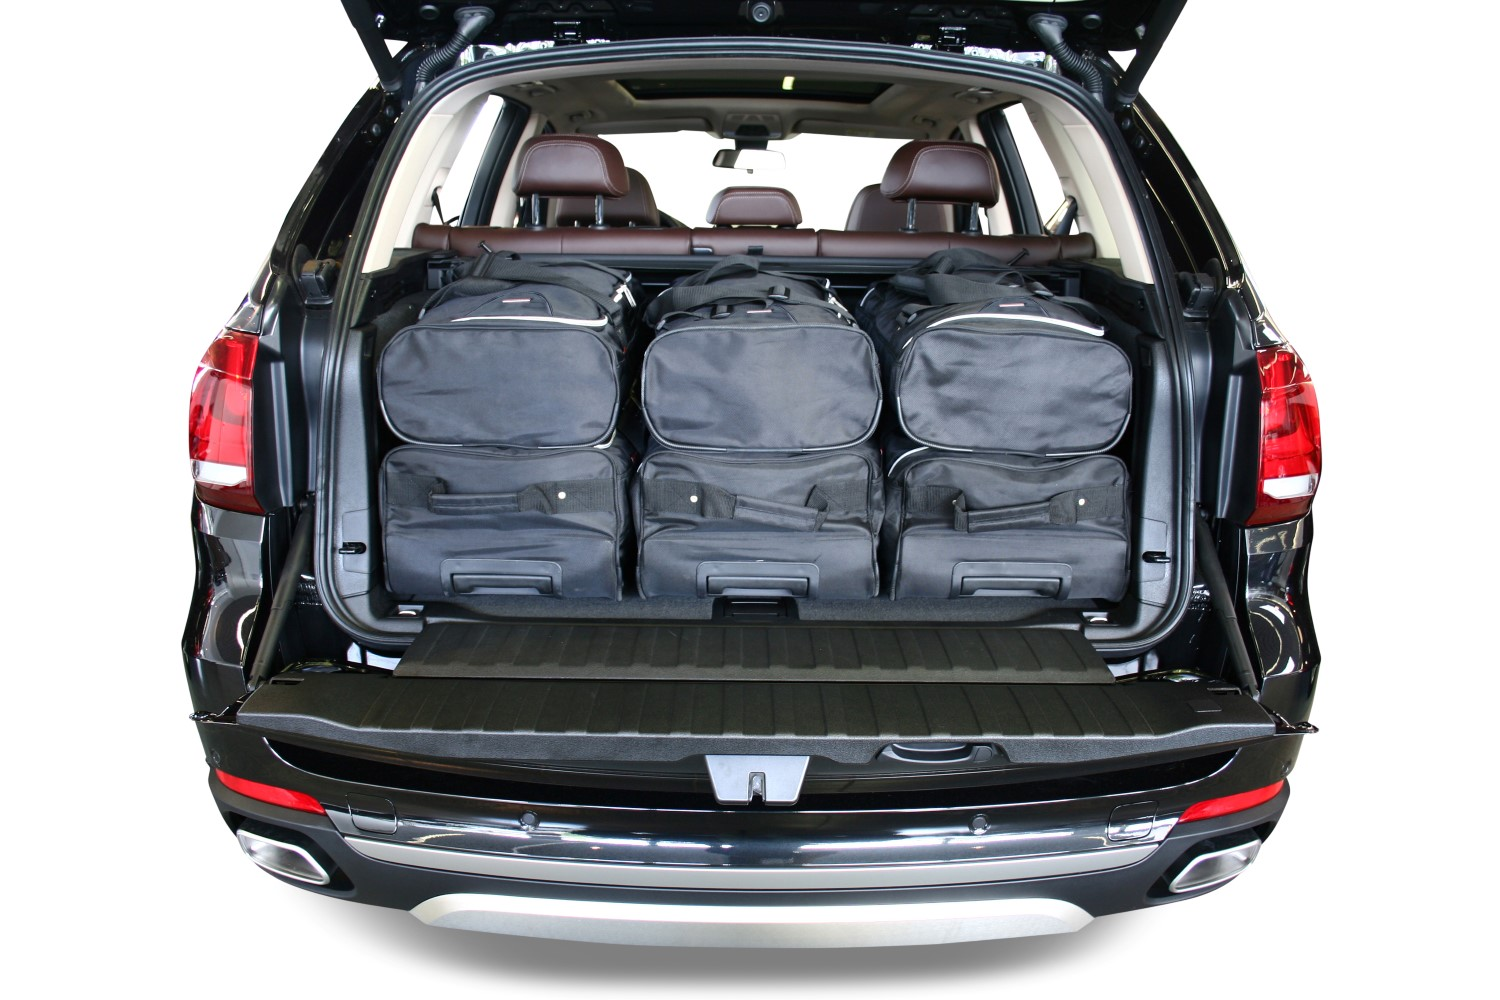 x5 bmw x5 incl plug in hybrid f15 2013 pr sent car bags set de sacs de voyage. Black Bedroom Furniture Sets. Home Design Ideas